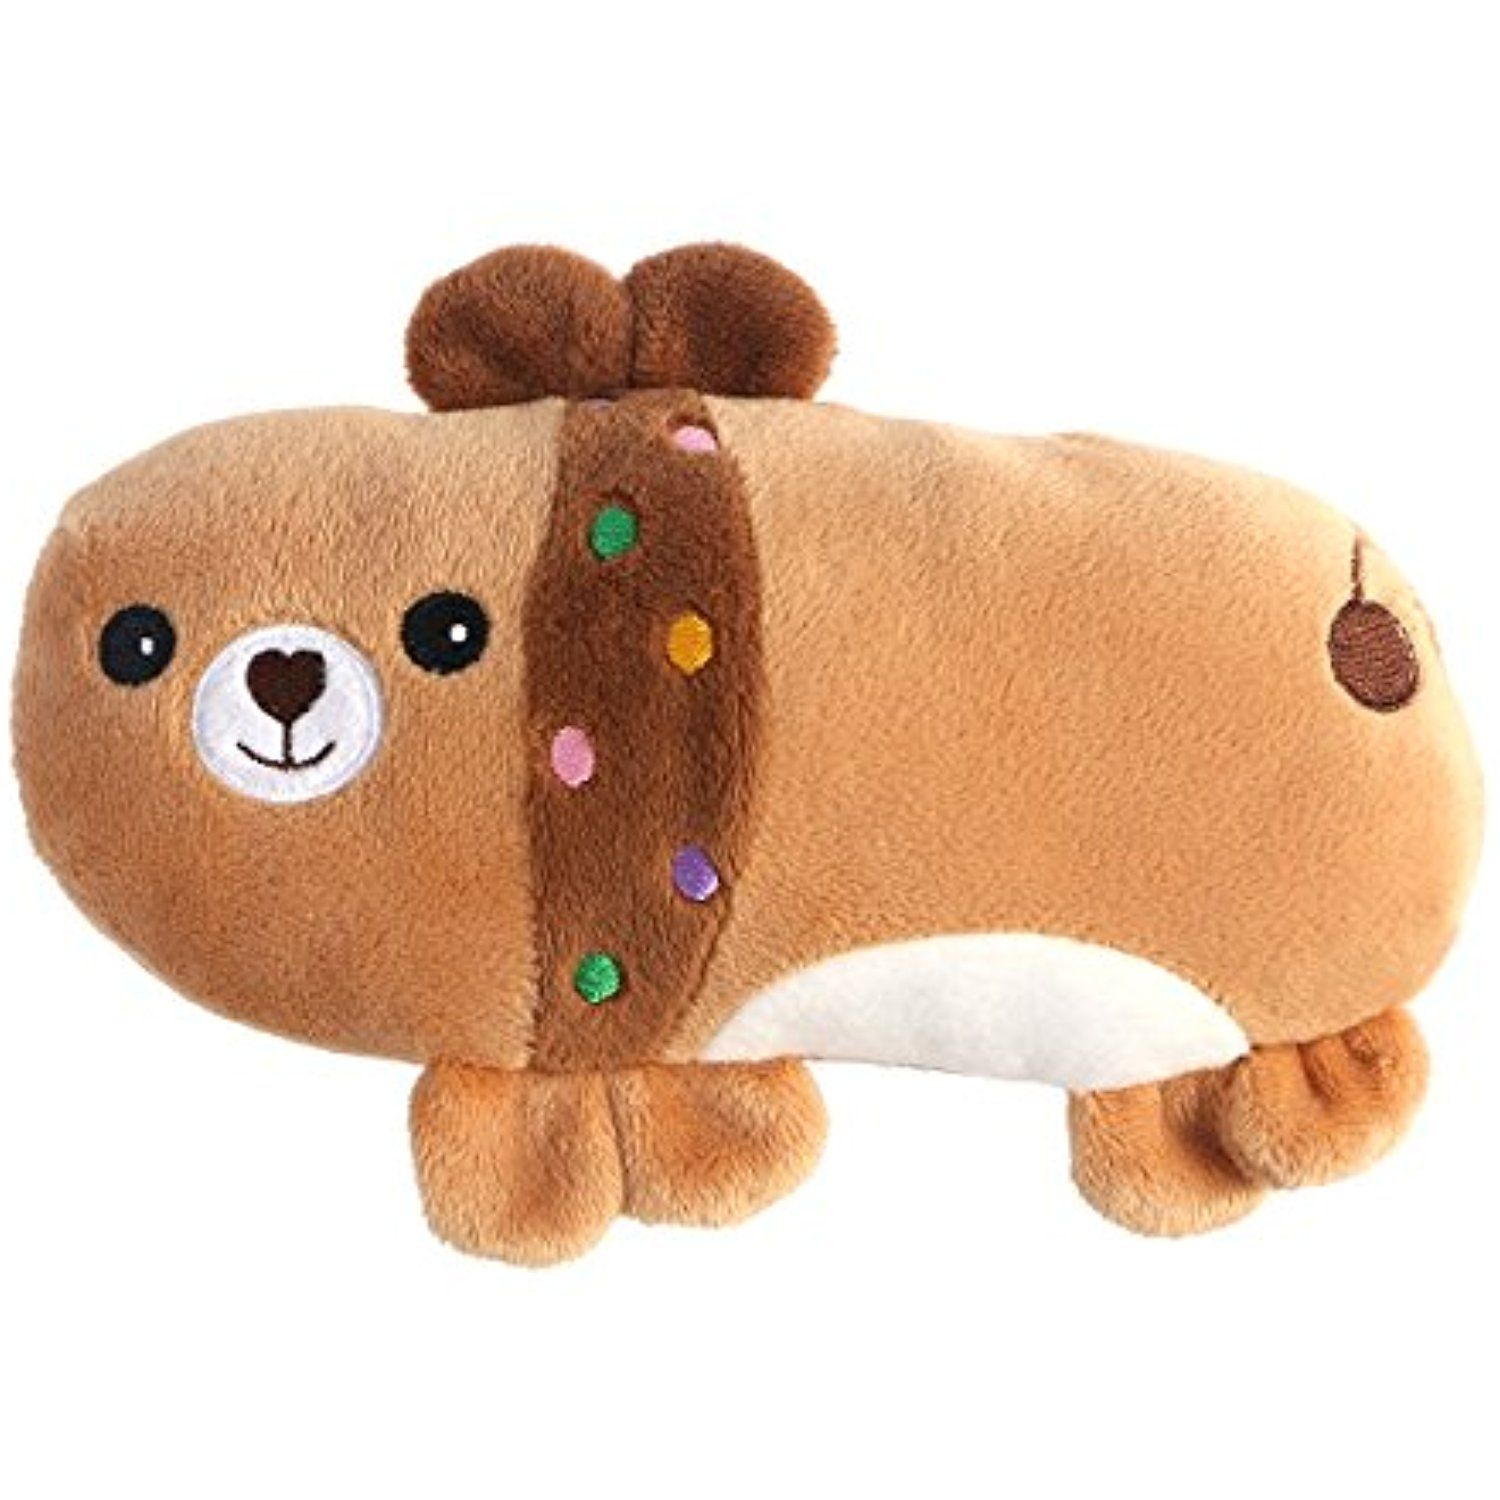 Ueetek Dog Squeaky Toy Dog Chew Toy Soft Plush Dog Toy Brown Bear